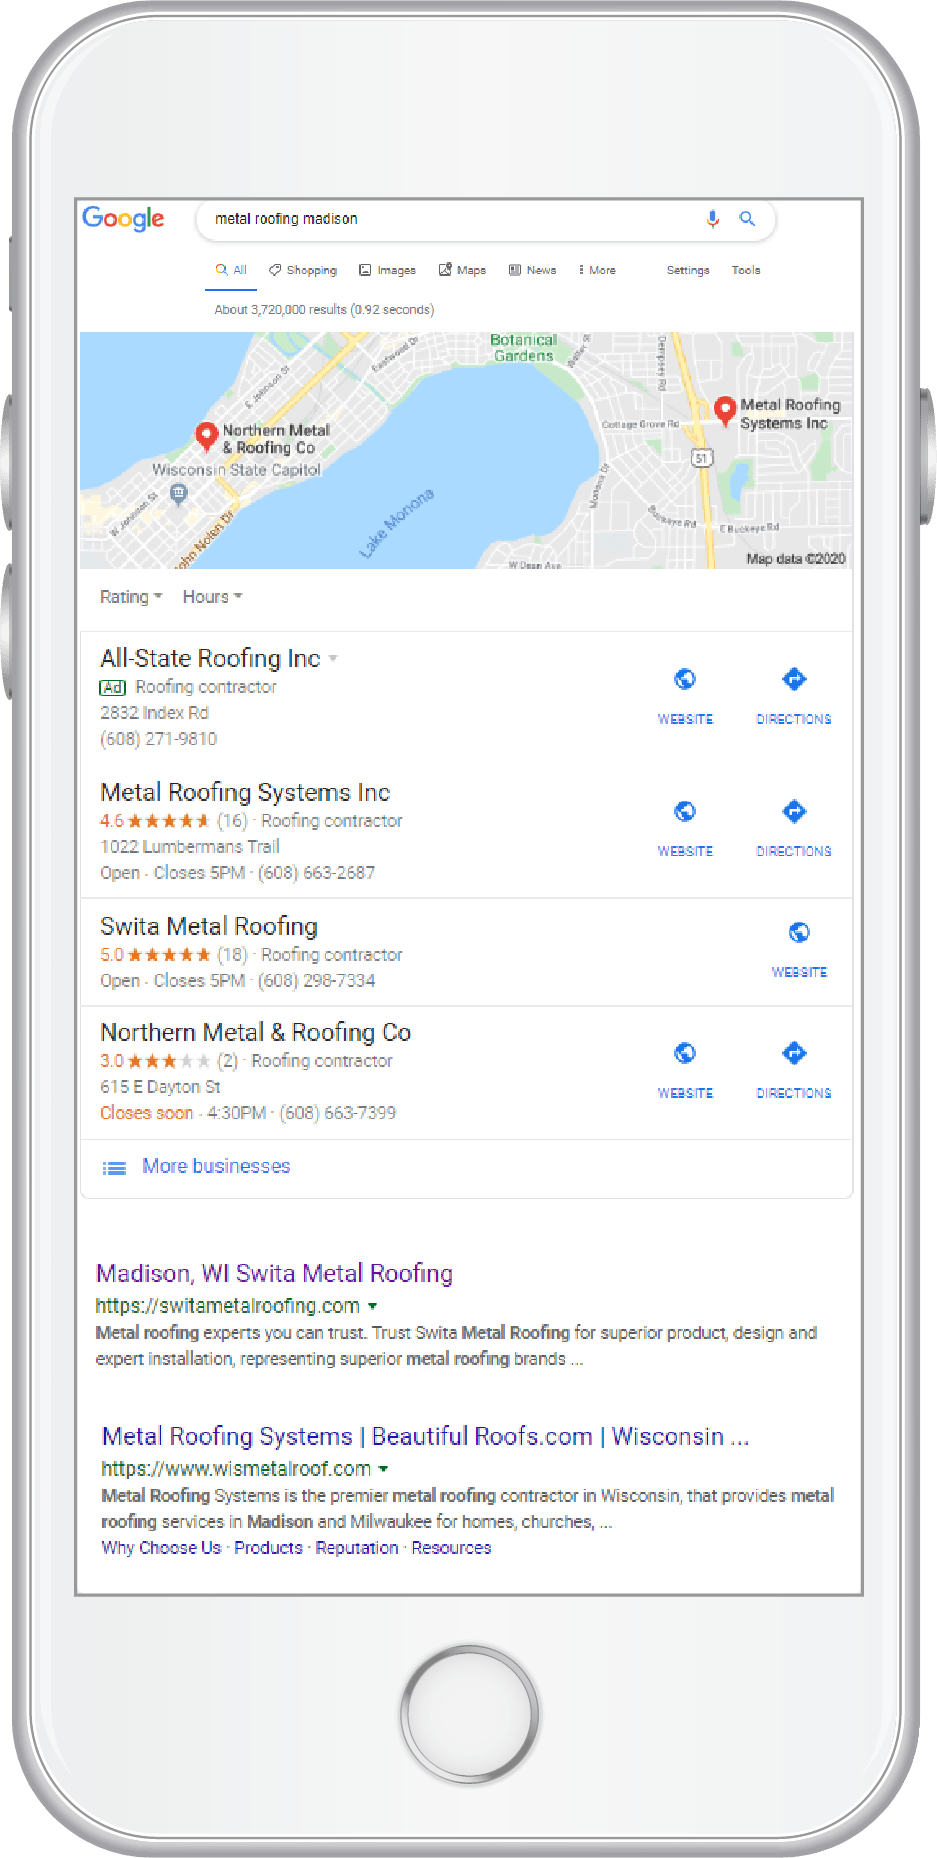 Swita Metal Roofing organic search results on phone